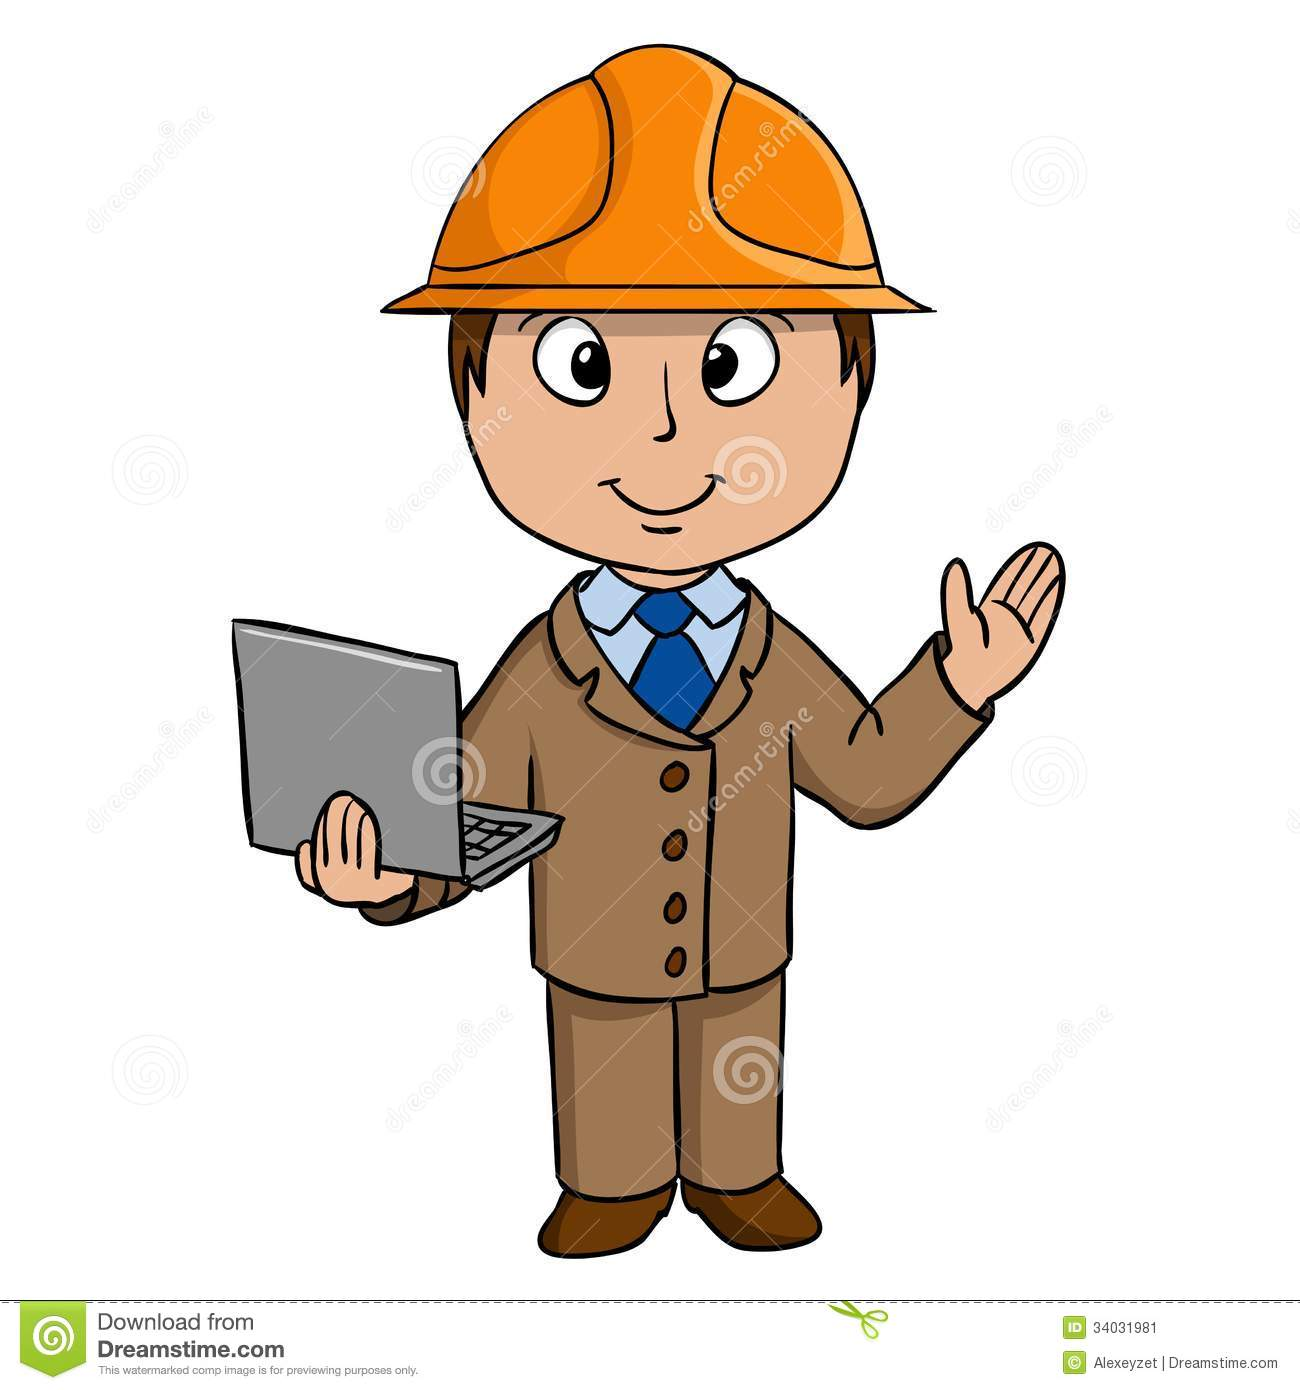 Boy clipart engineer Engineer Clipart  Cartoon